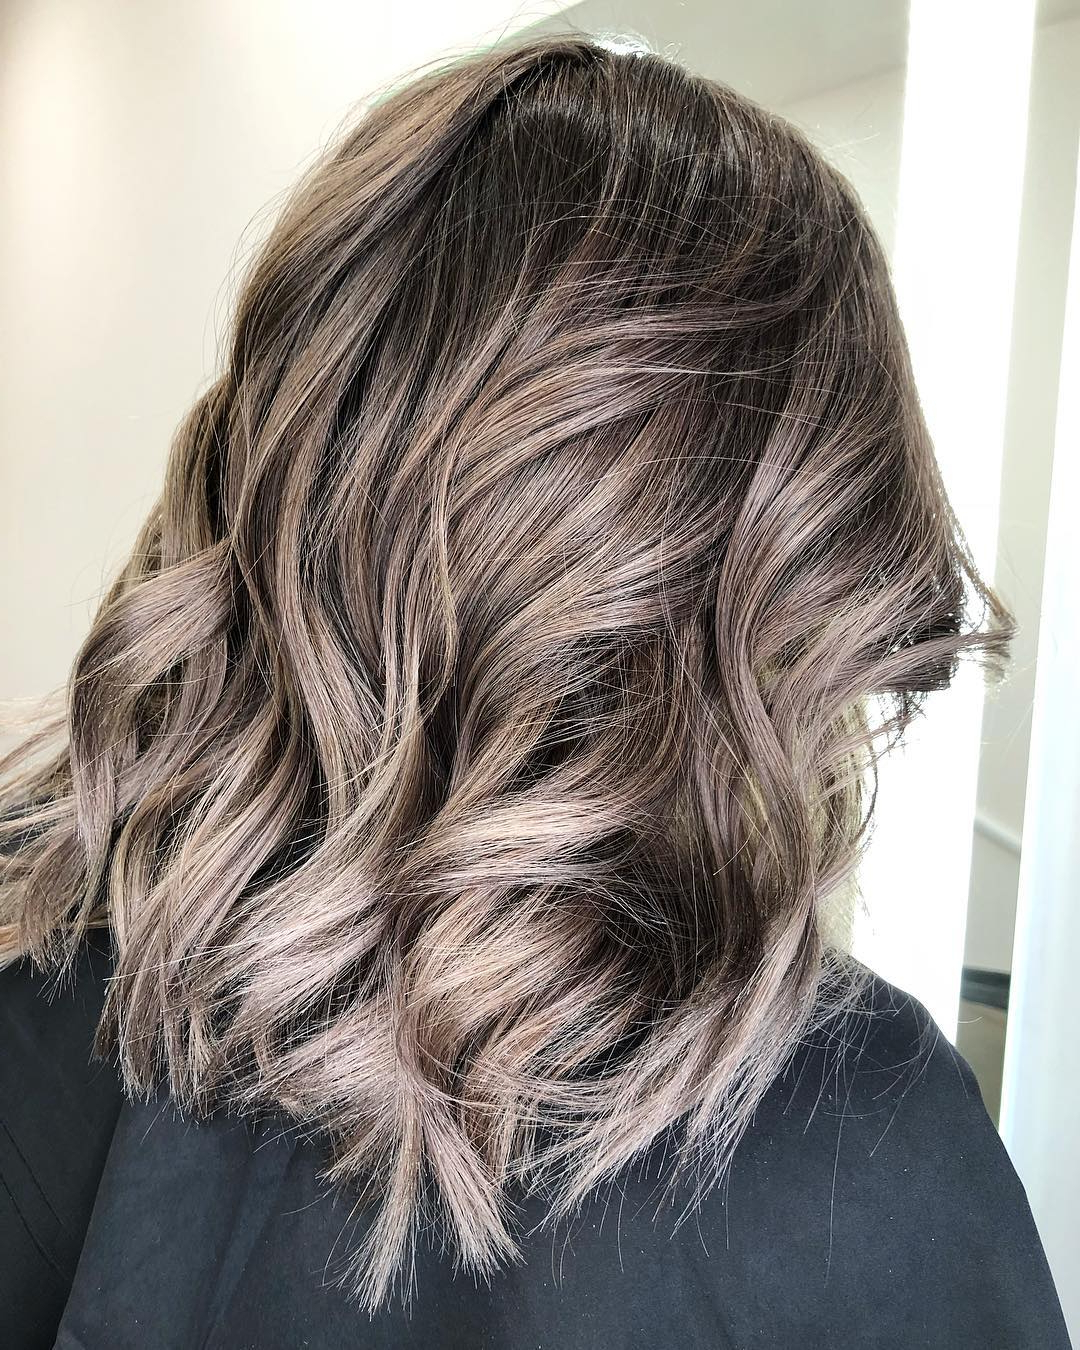 10 Balayage Hair Styles For Medium Length Hair 2020 With Regard To Current Balayage Hairstyles For Shoulder Length Shag (View 10 of 20)